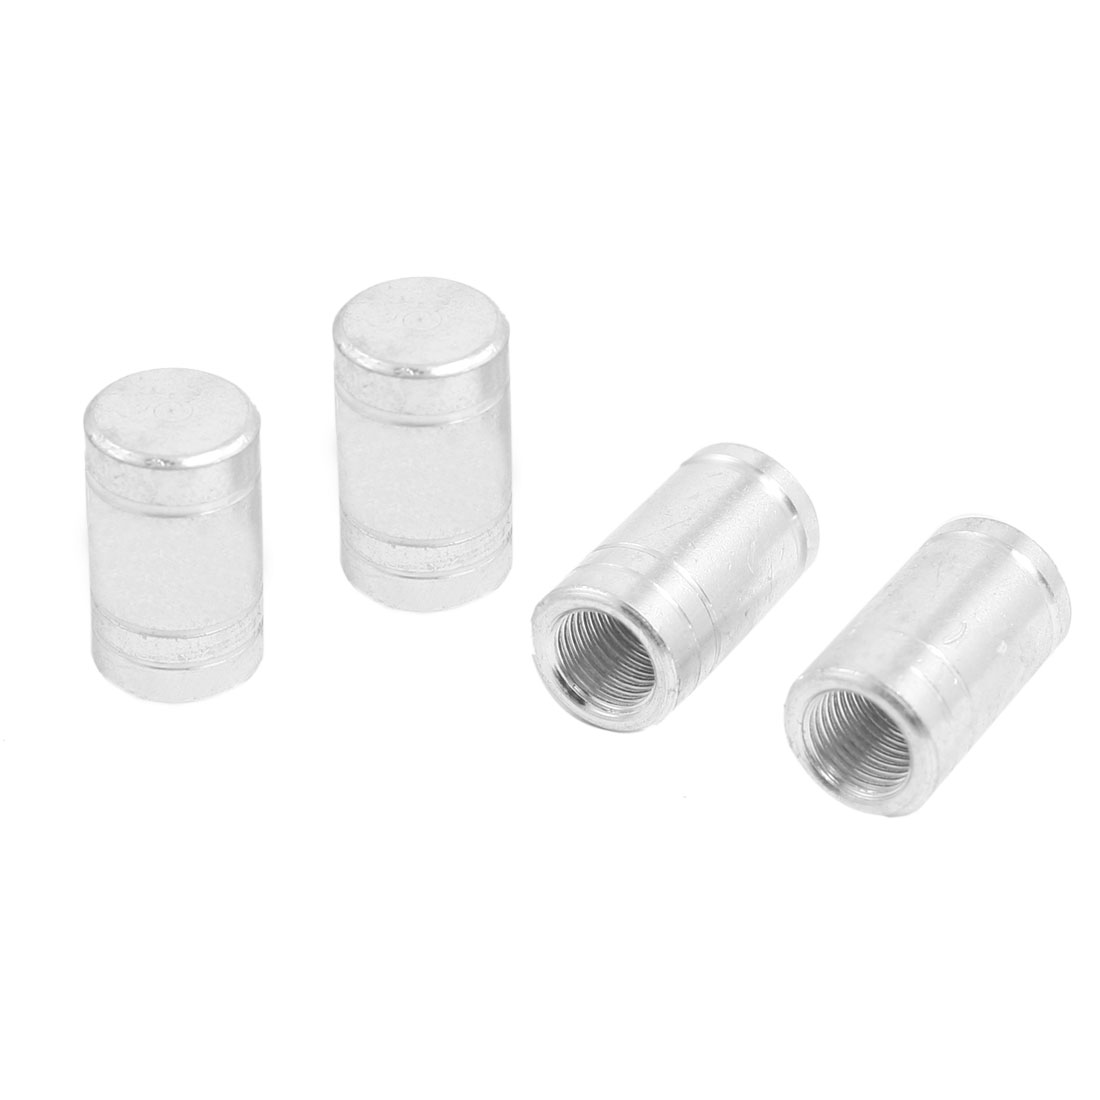 4 x Metal 7mm Thread Car Bike Tyre Tire Valve Stem Caps Covers Silver Tone